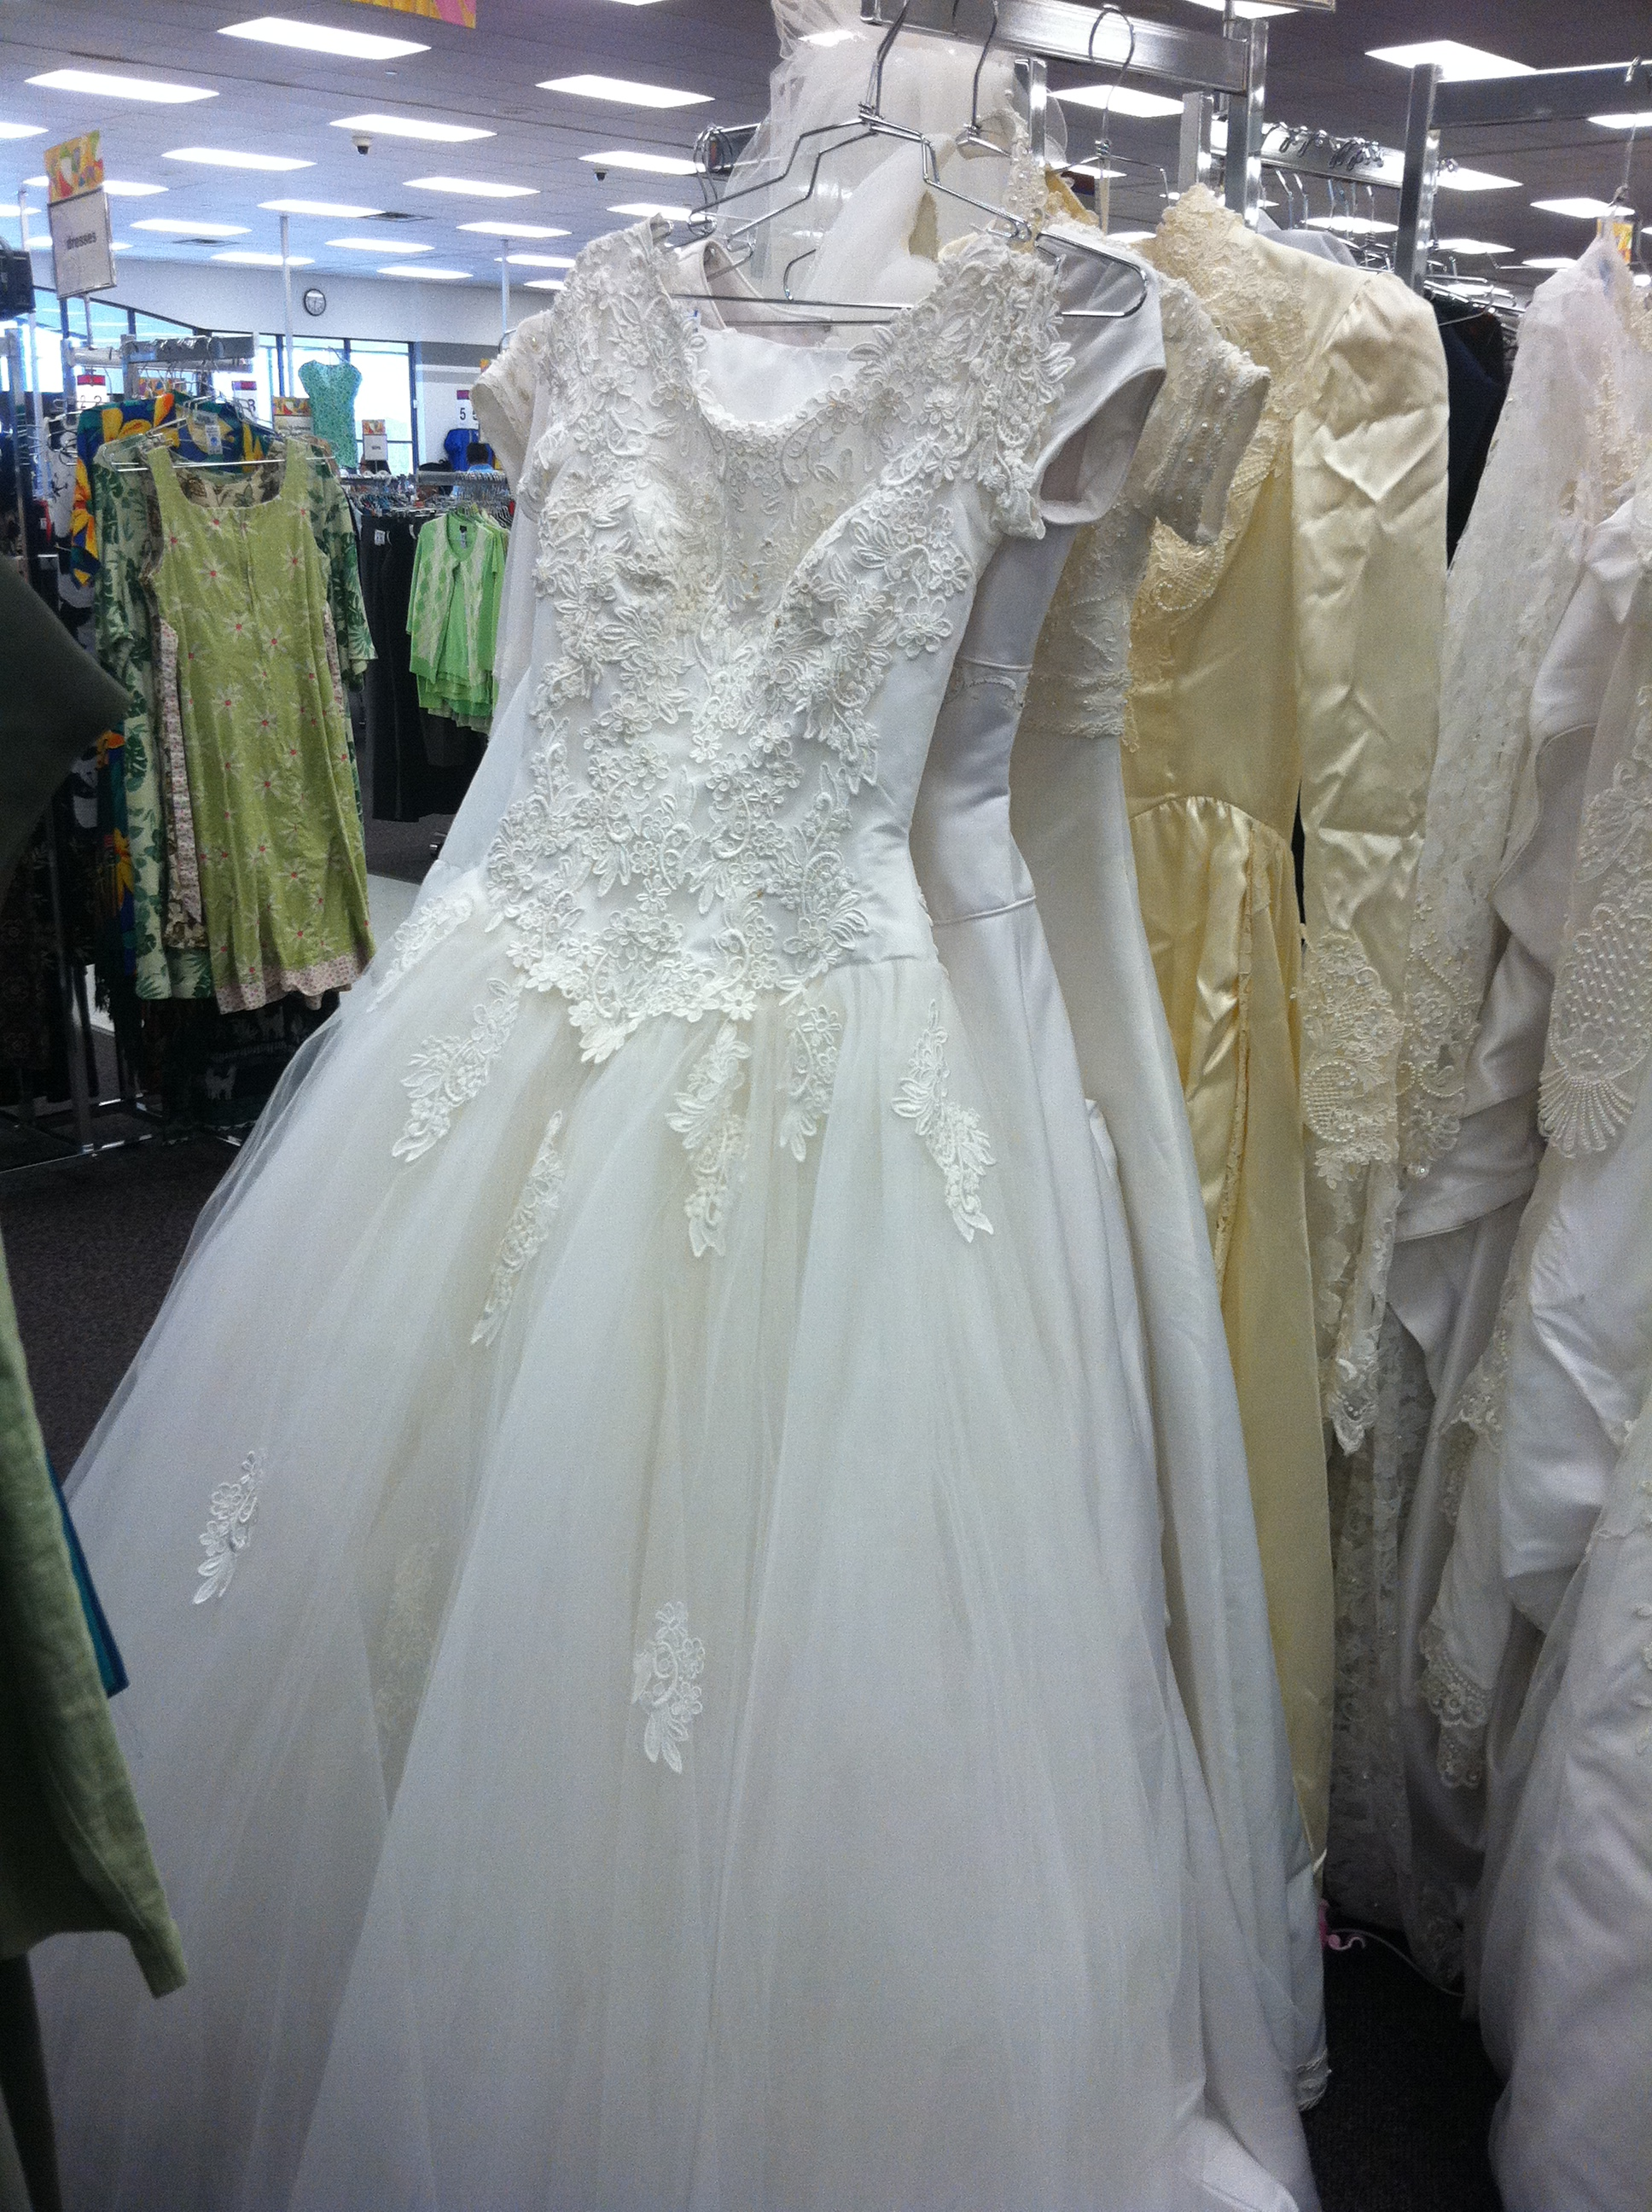 thrift shop for wedding dresses shop wedding dresses Thrift Shop For Wedding Dresses 52